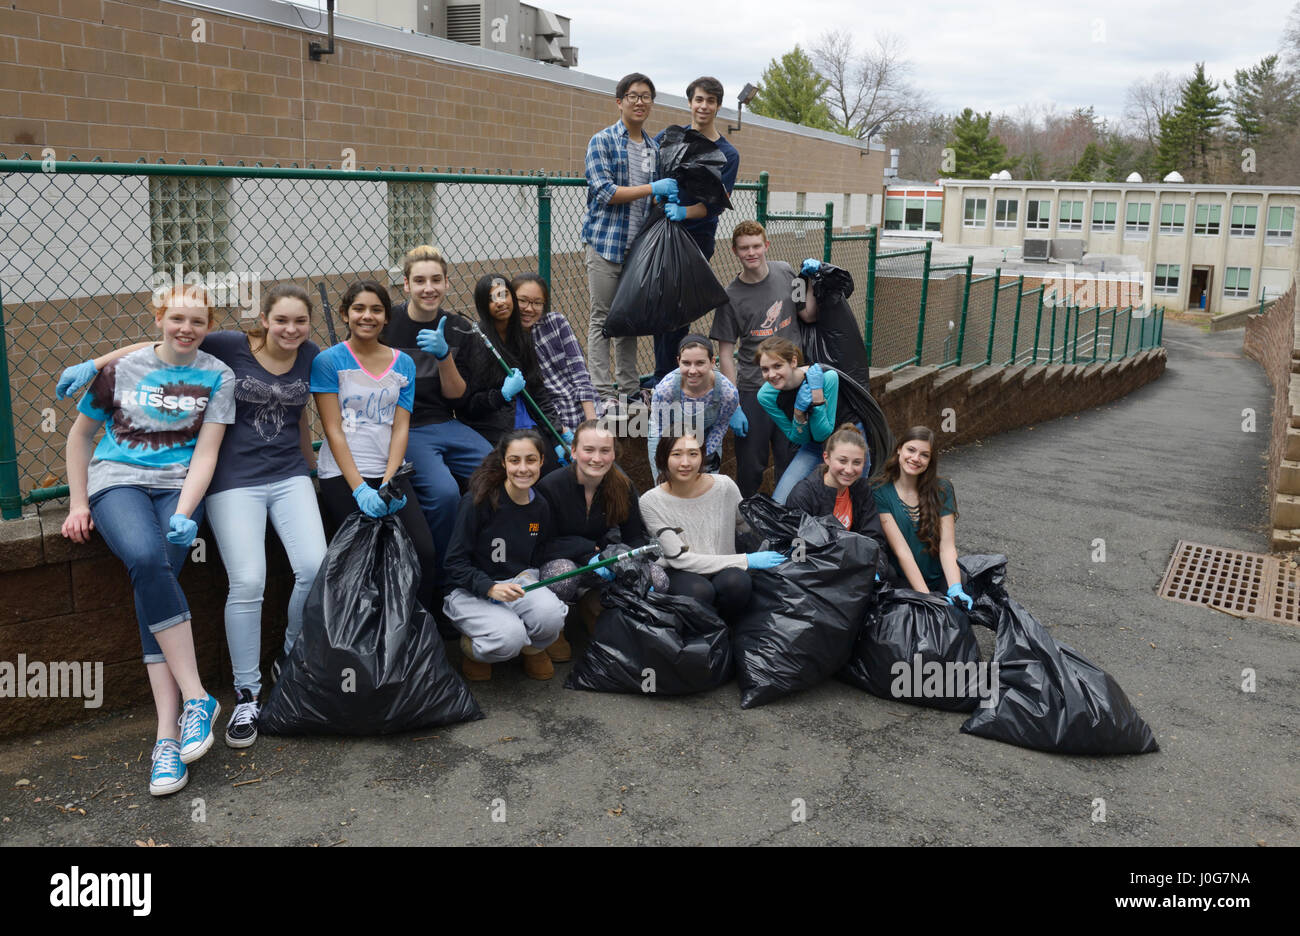 High school students after a volunteer community service school cleanup project with bags of litter - Stock Image